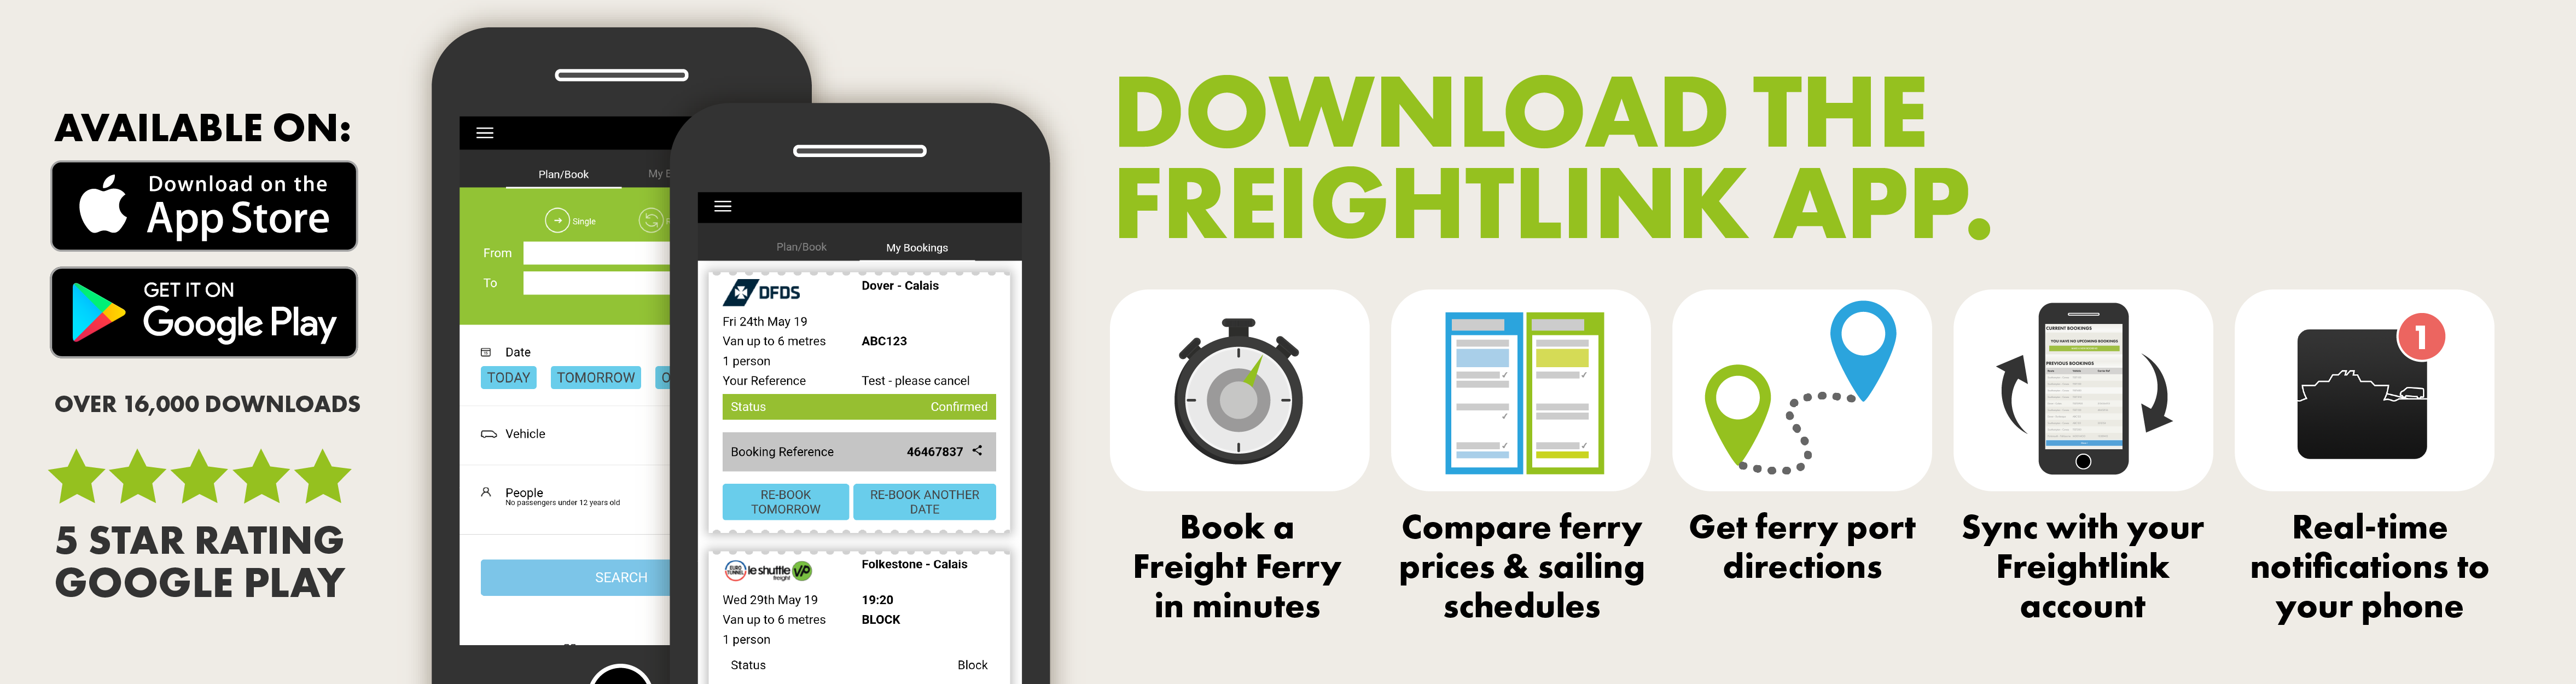 Freightlink App features